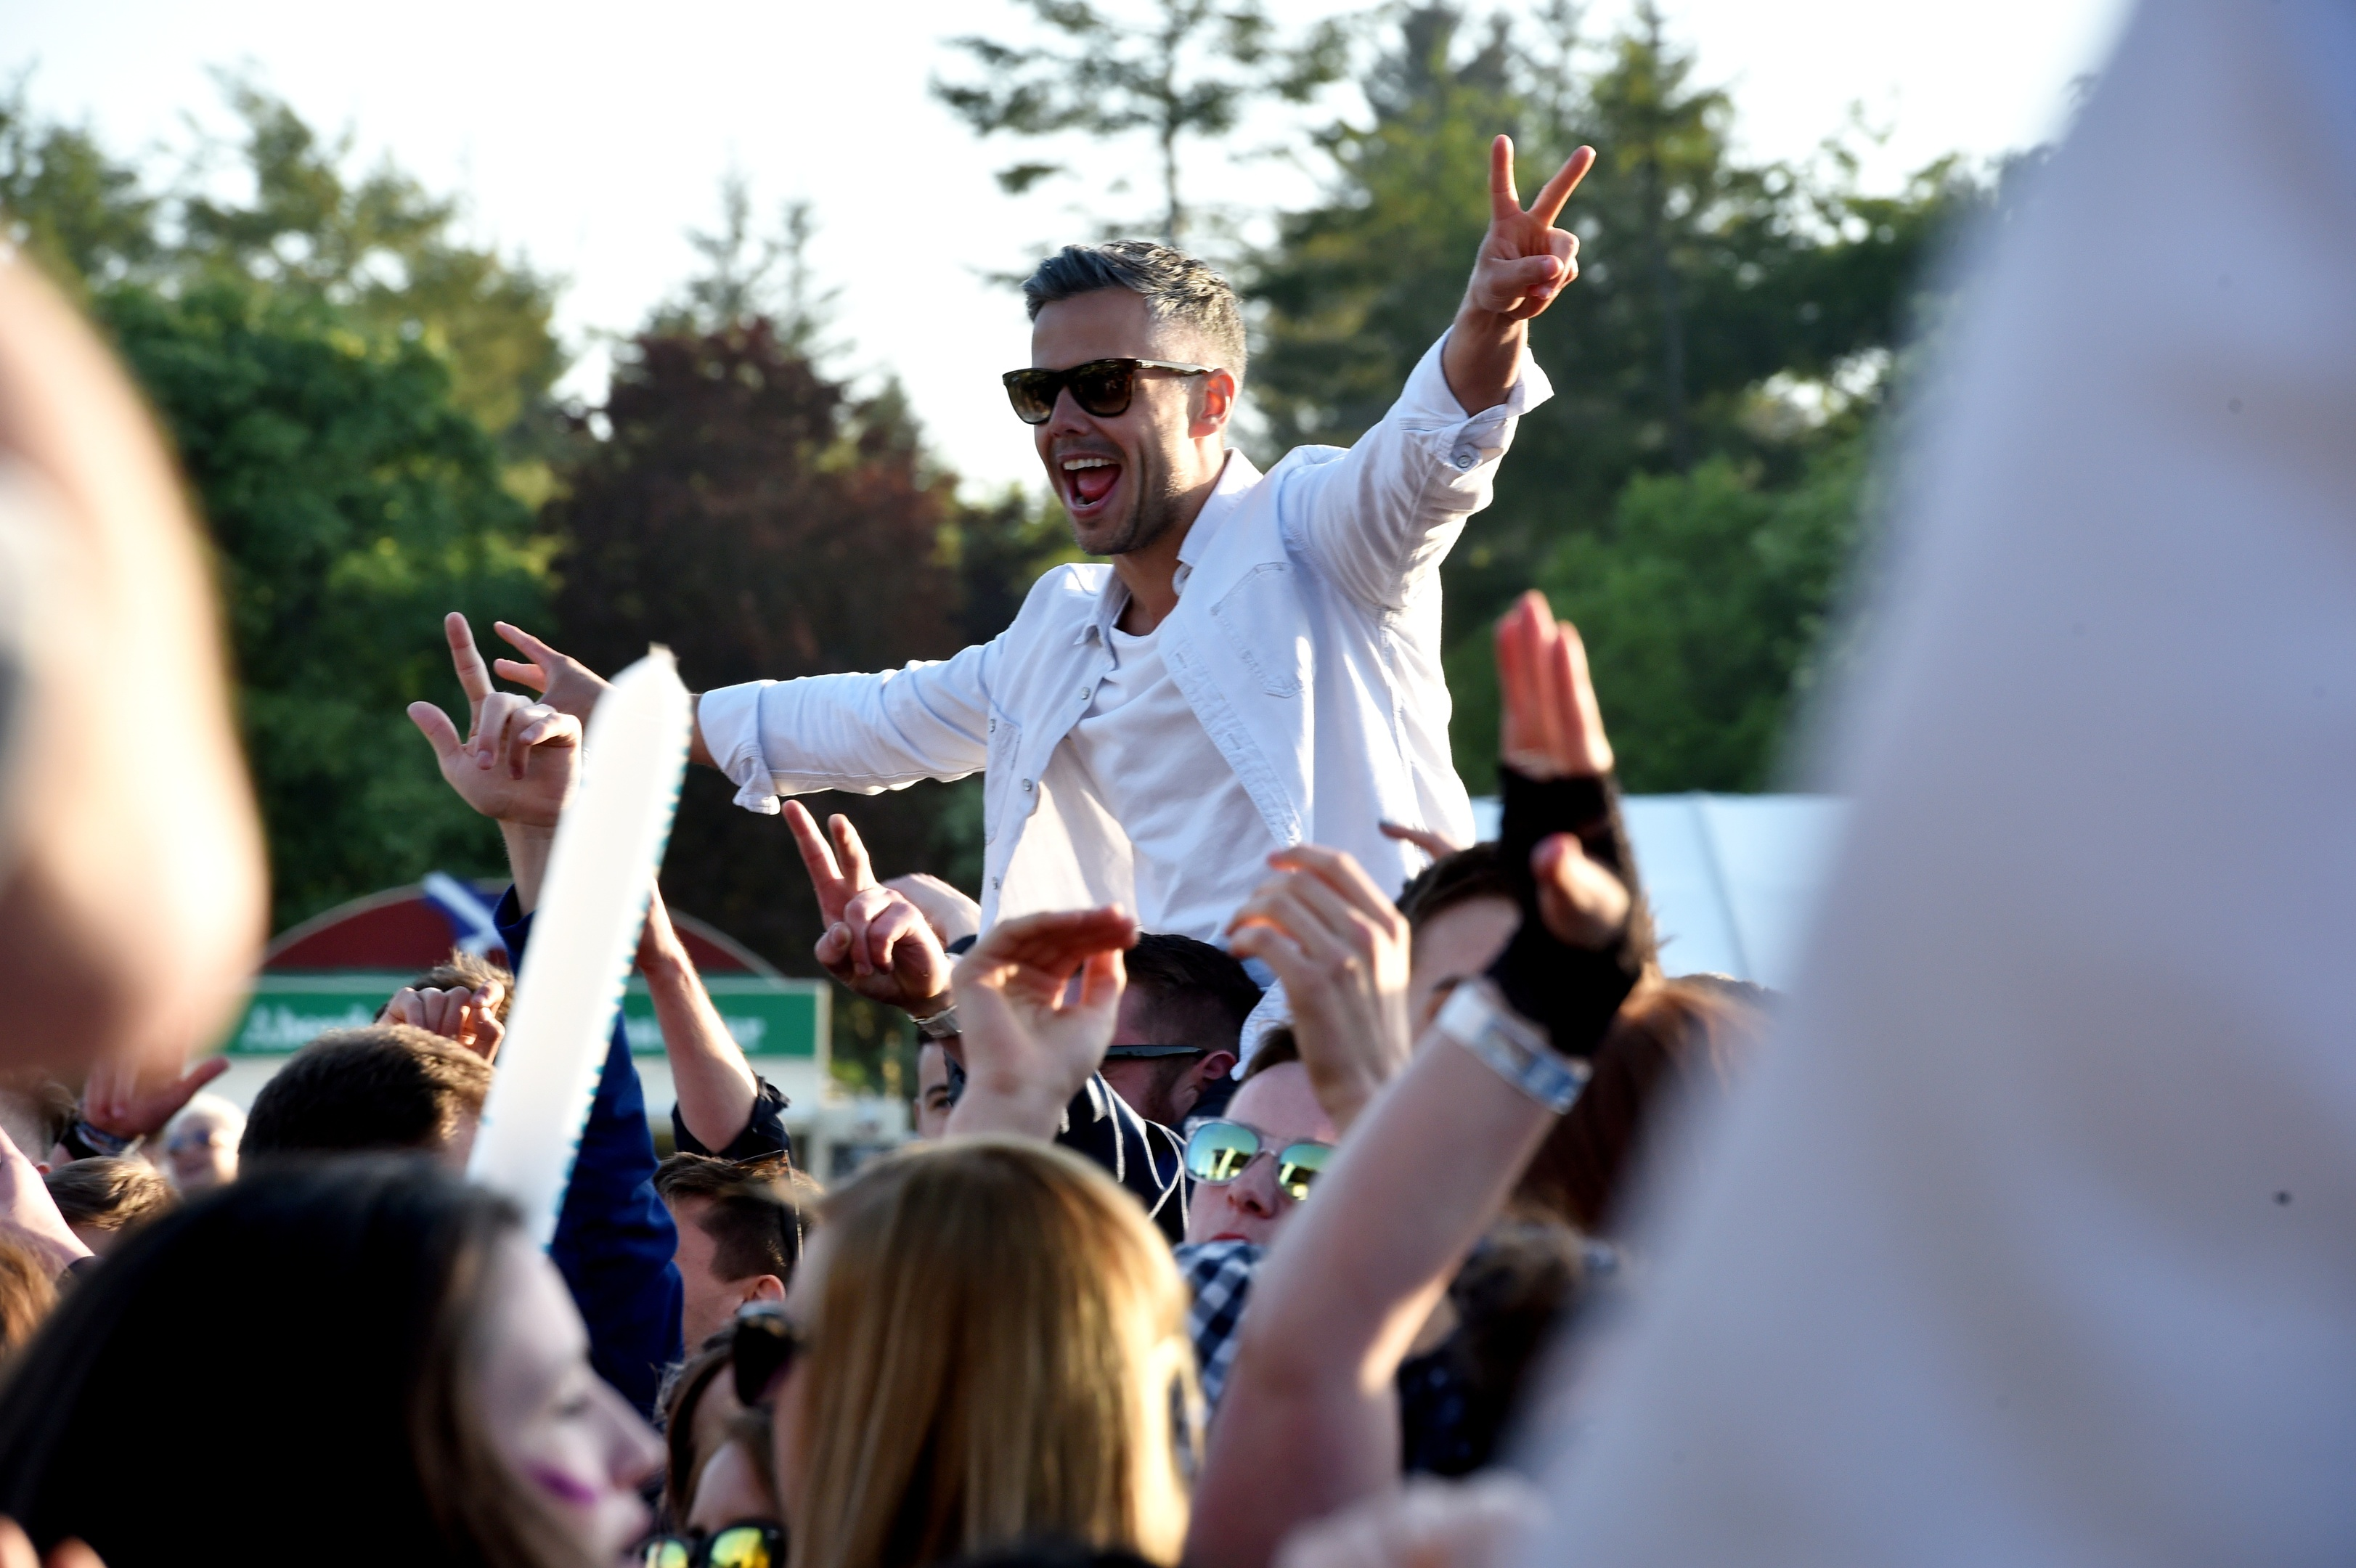 Fans have a great time at the Enjoy Music Festival in Hazlehead Park.